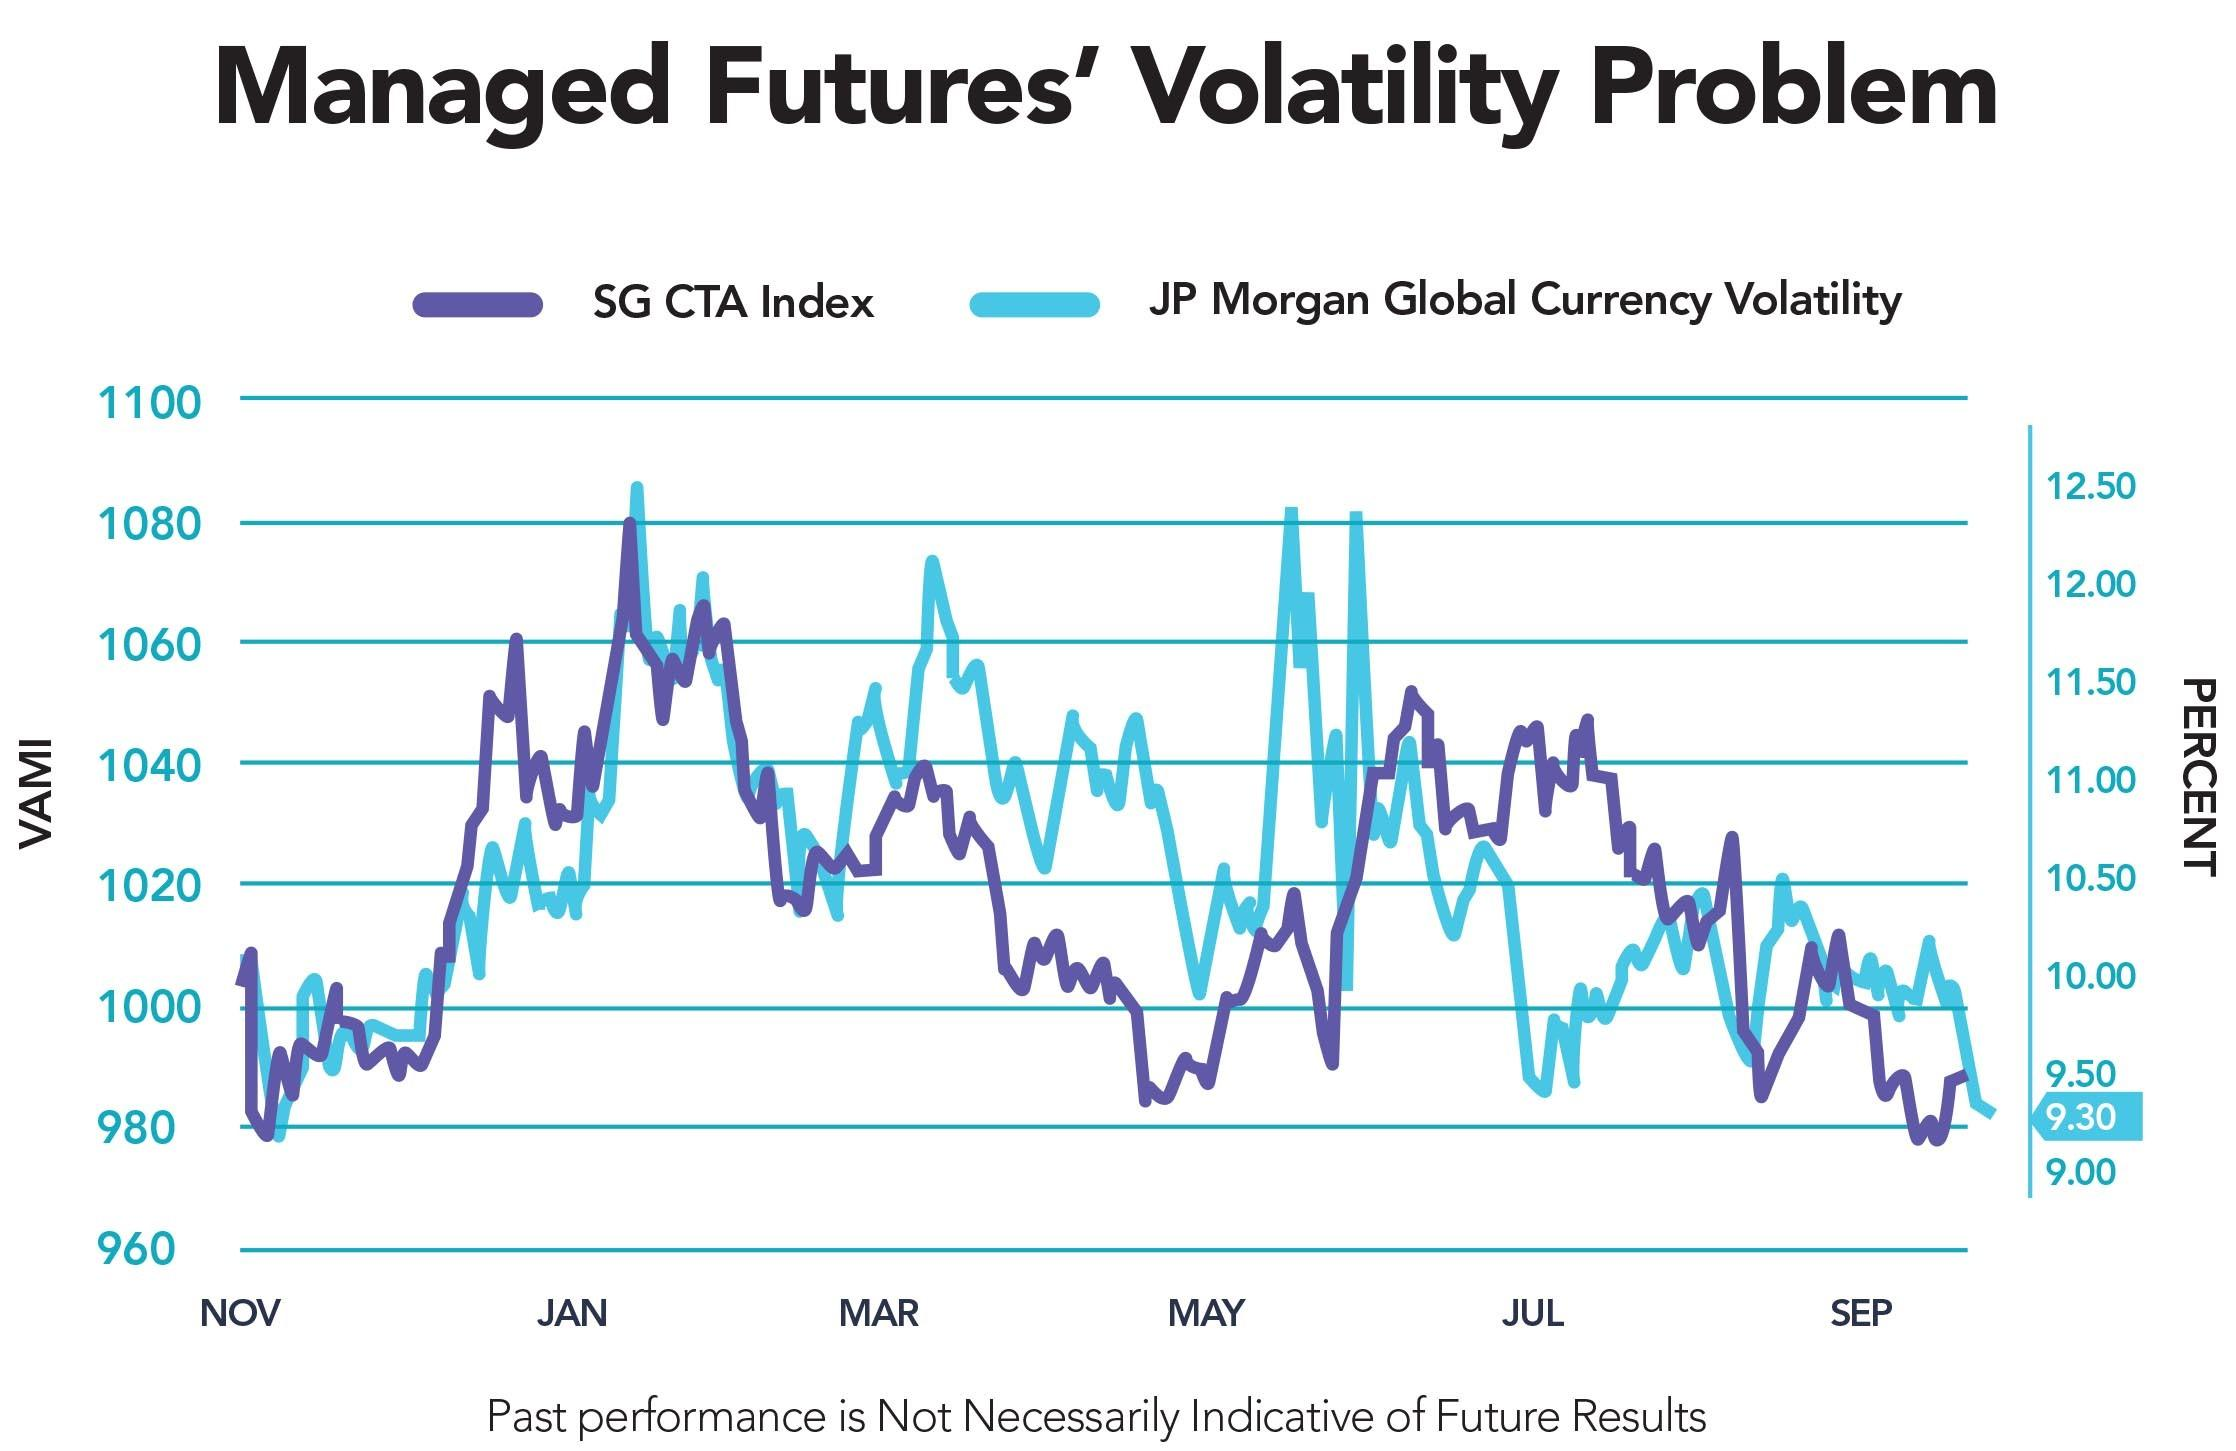 Overlaying The Socgen Cta Index On Top Of This Currency Volatility Chart You Can See High Correlation Between Managed Futures Returns And Level